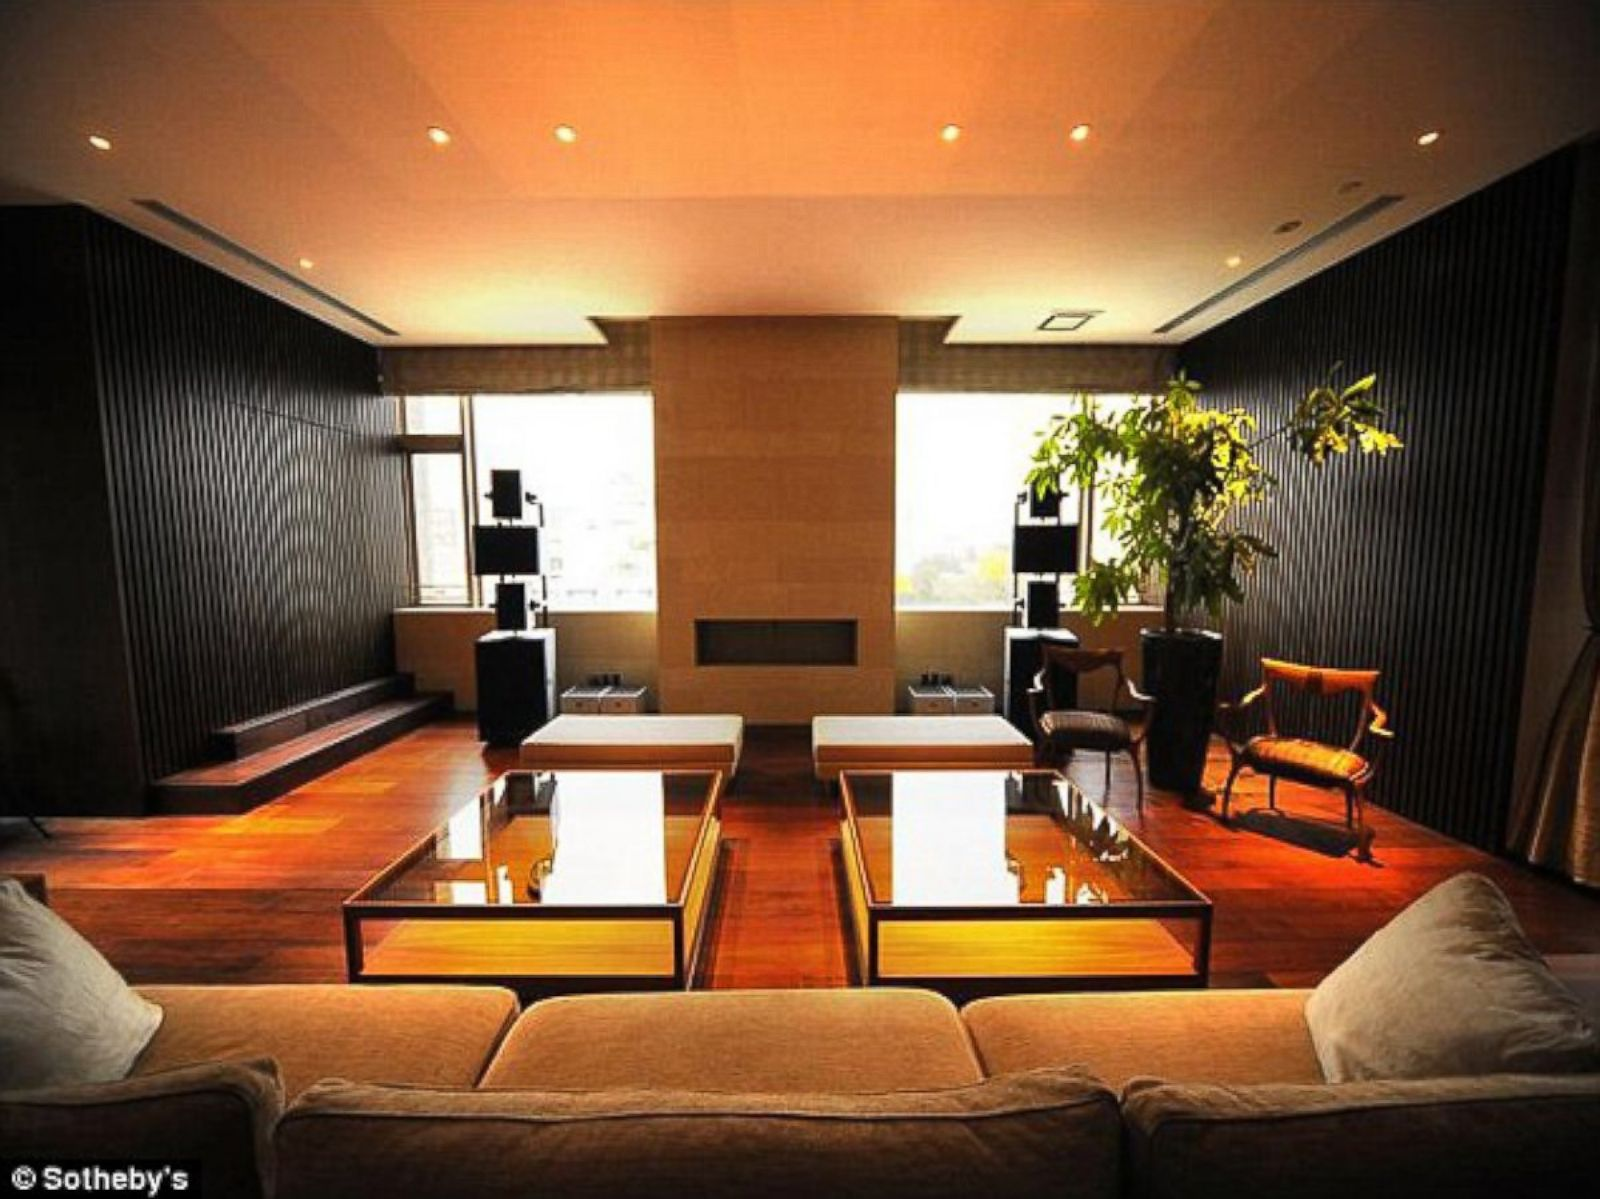 Tokyo\'s Most Expensive One-Bedroom Flat at $15 Million Picture ...